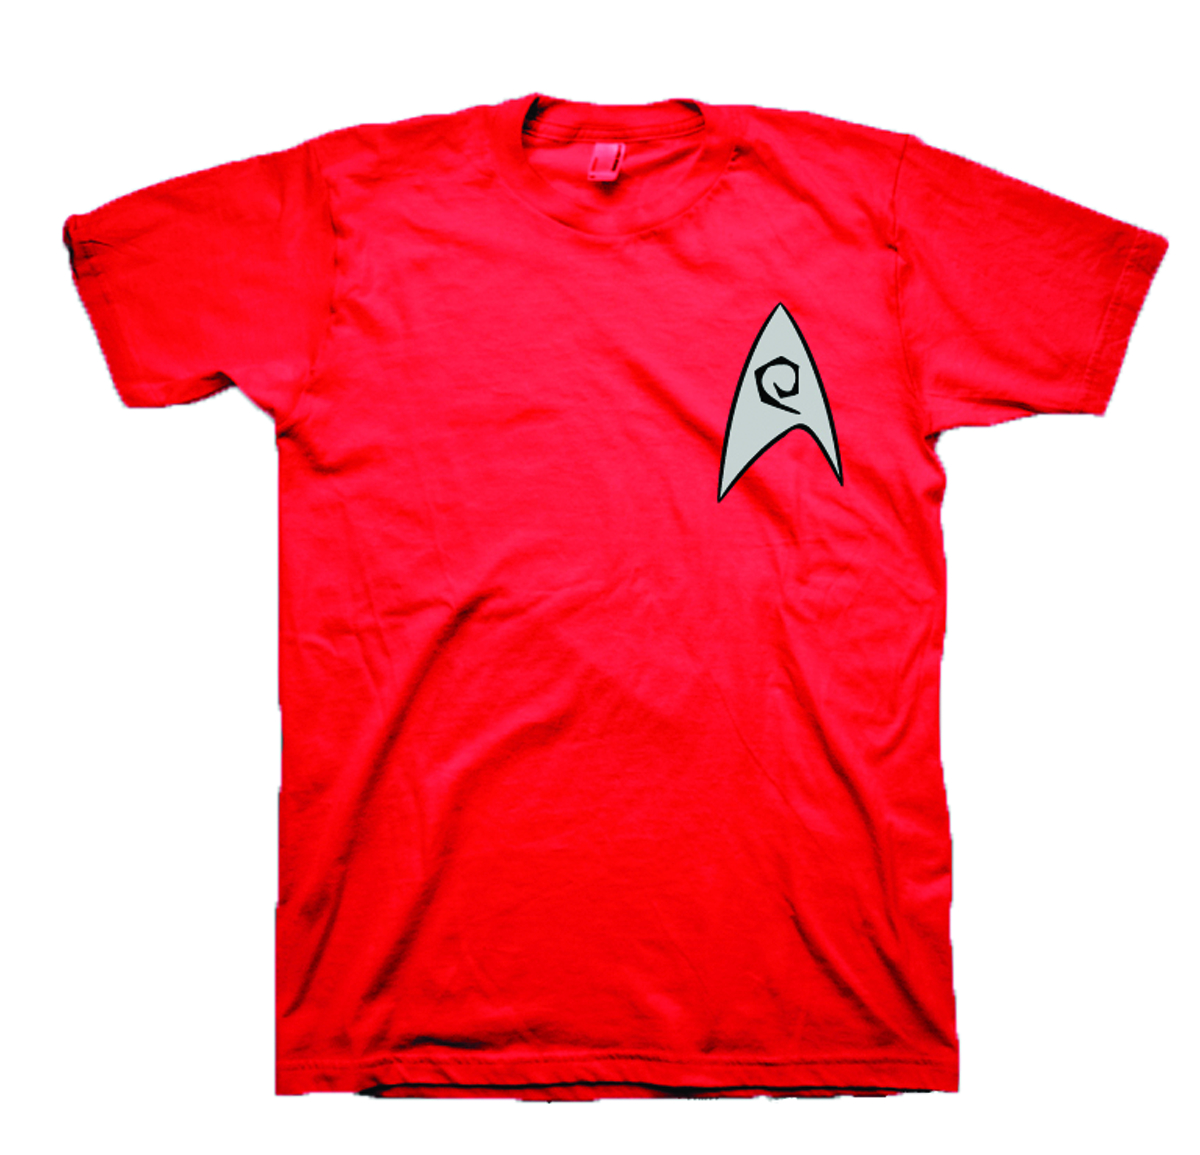 STAR TREK RED SHIRT COSTUME T/S XXL